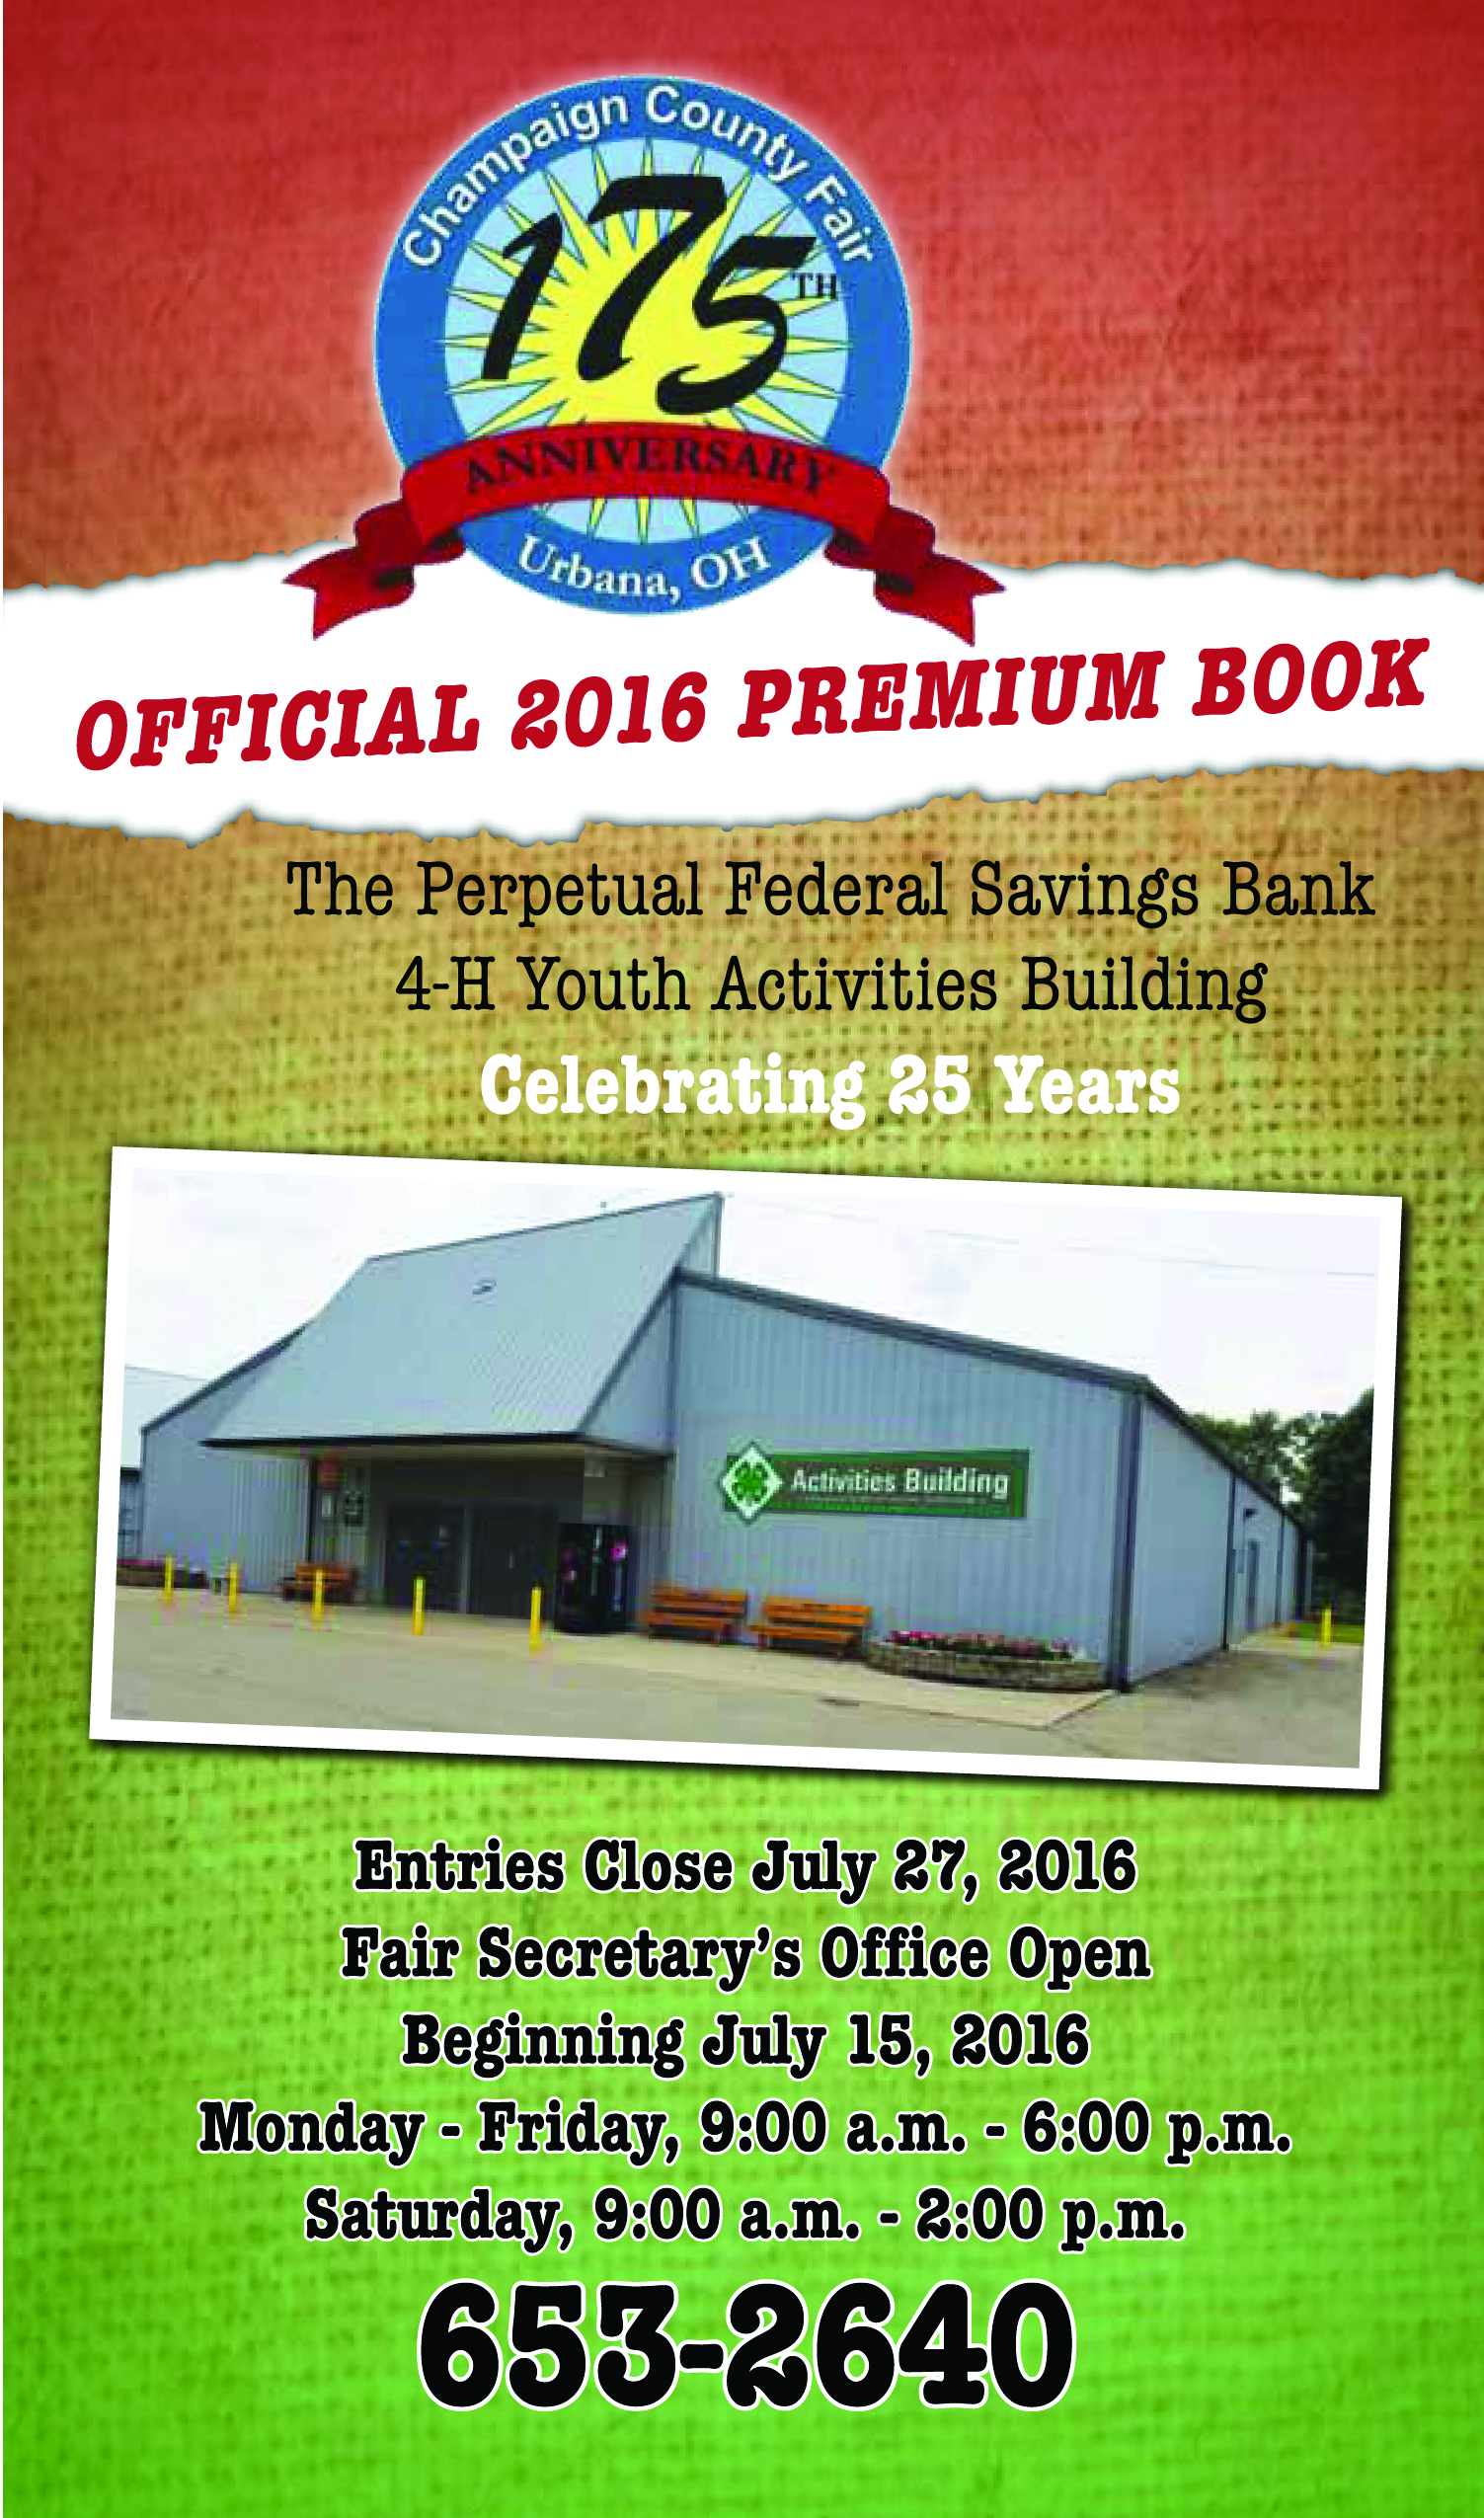 Champaign County Fair Premium Book 2016